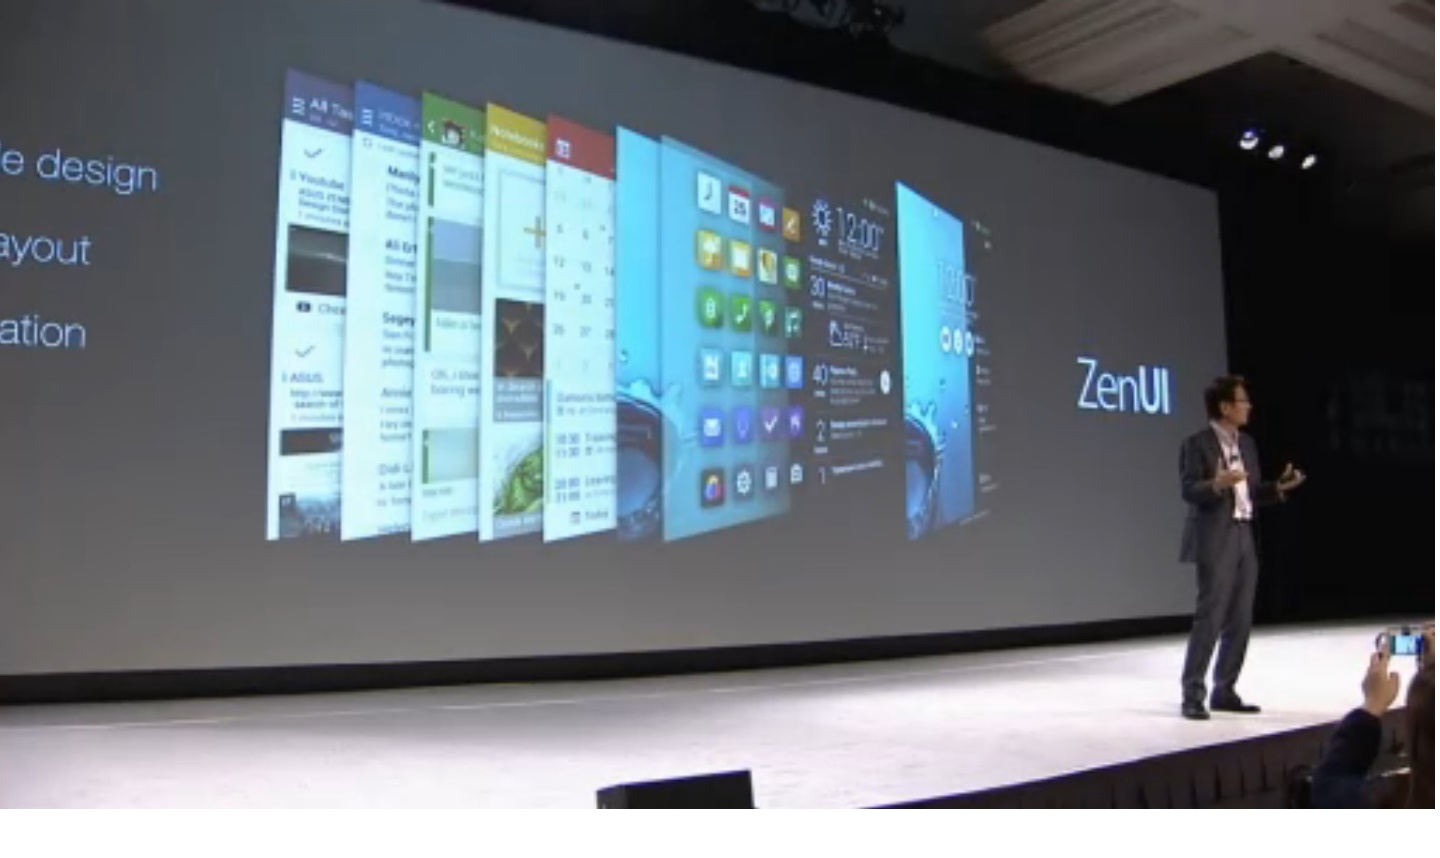 7e9cb7d5e Shih also elaborated the new ASUS ZenUI to be a much smarter and  customisable UI overall with SIRI/S-Voice like personal concierge. The  appearance of the UI ...